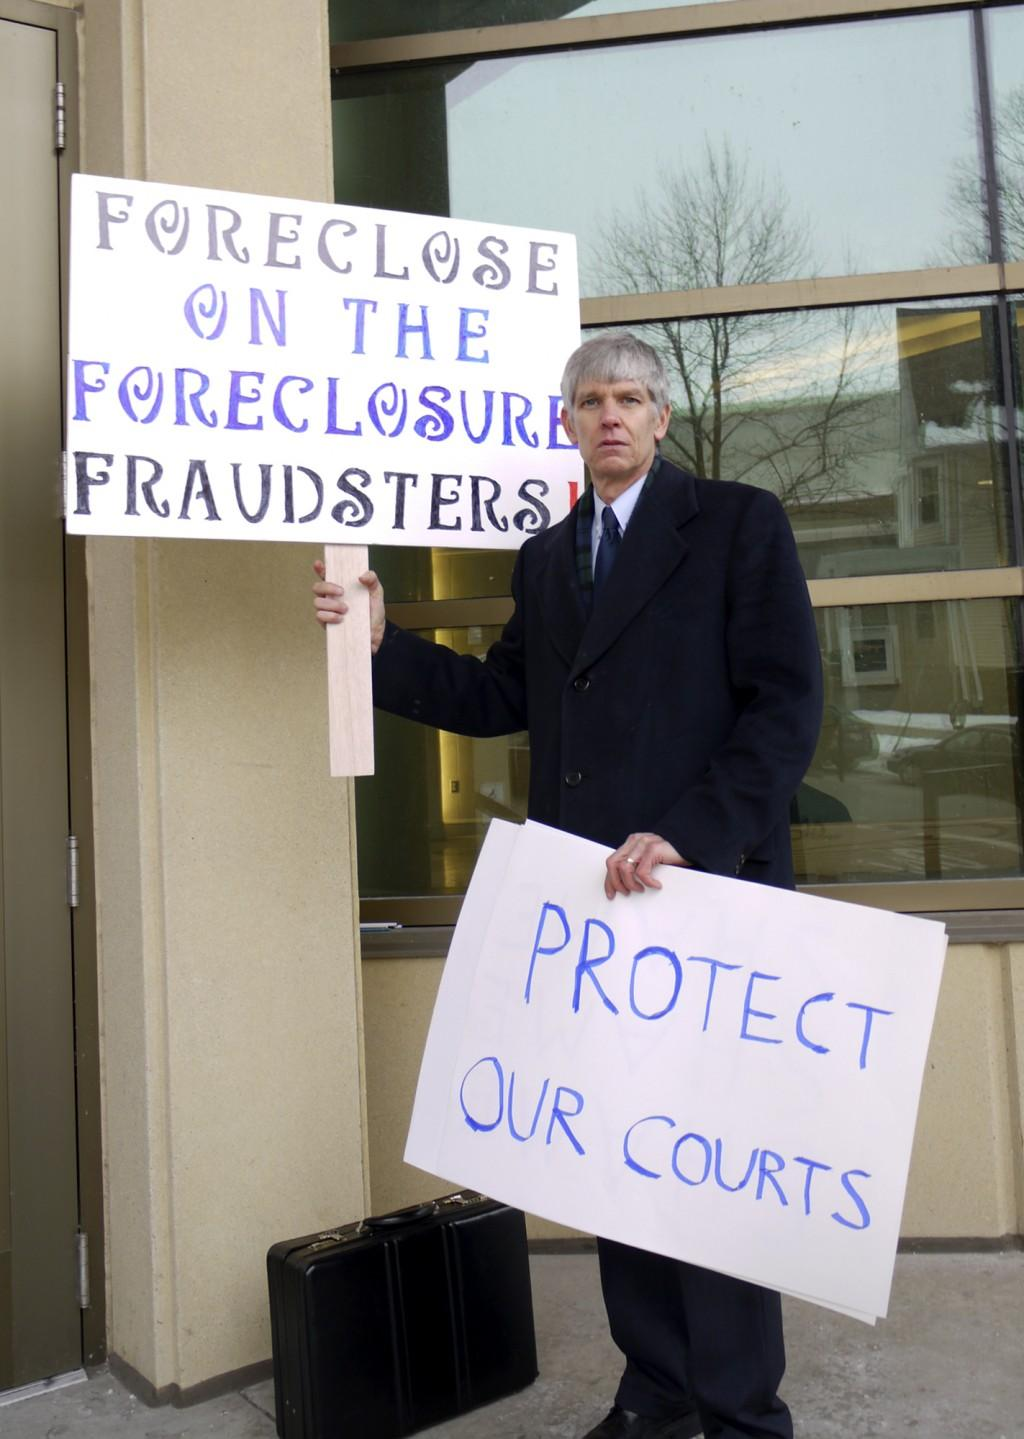 Foreclosed homeowners challenge banks to prove they still